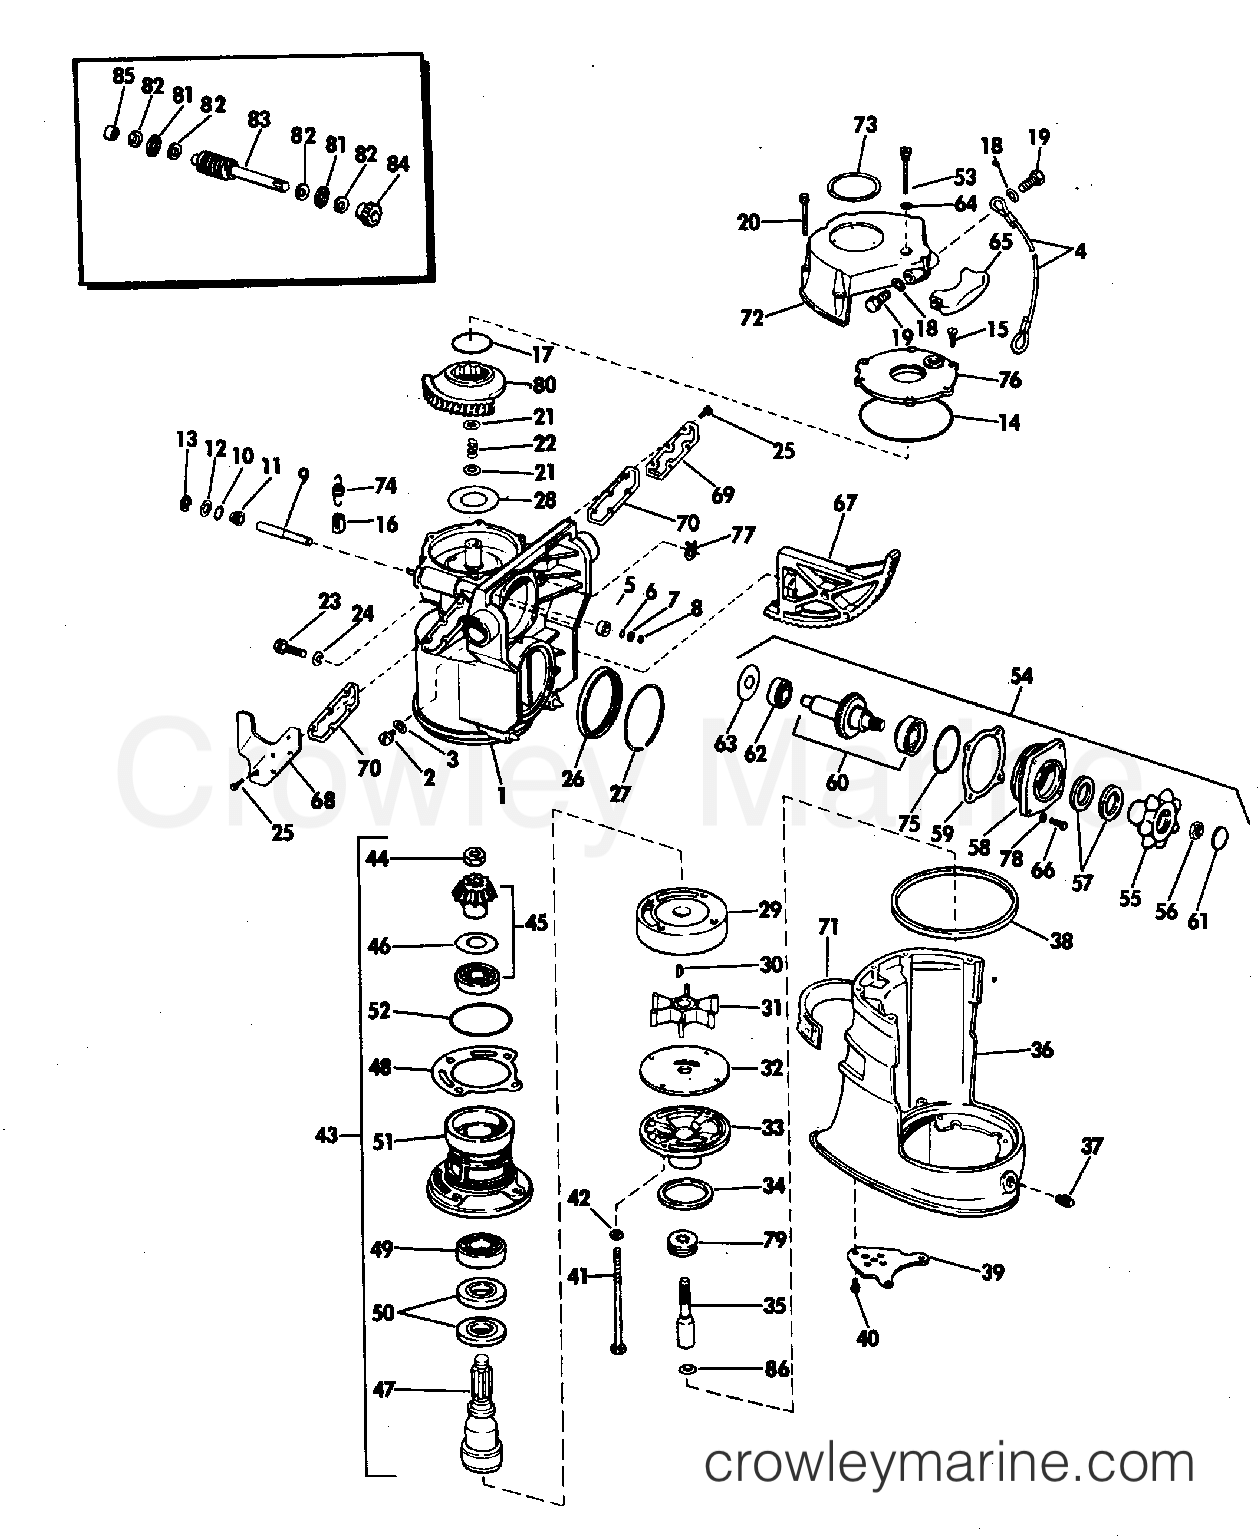 omc 120 hp engine diagram